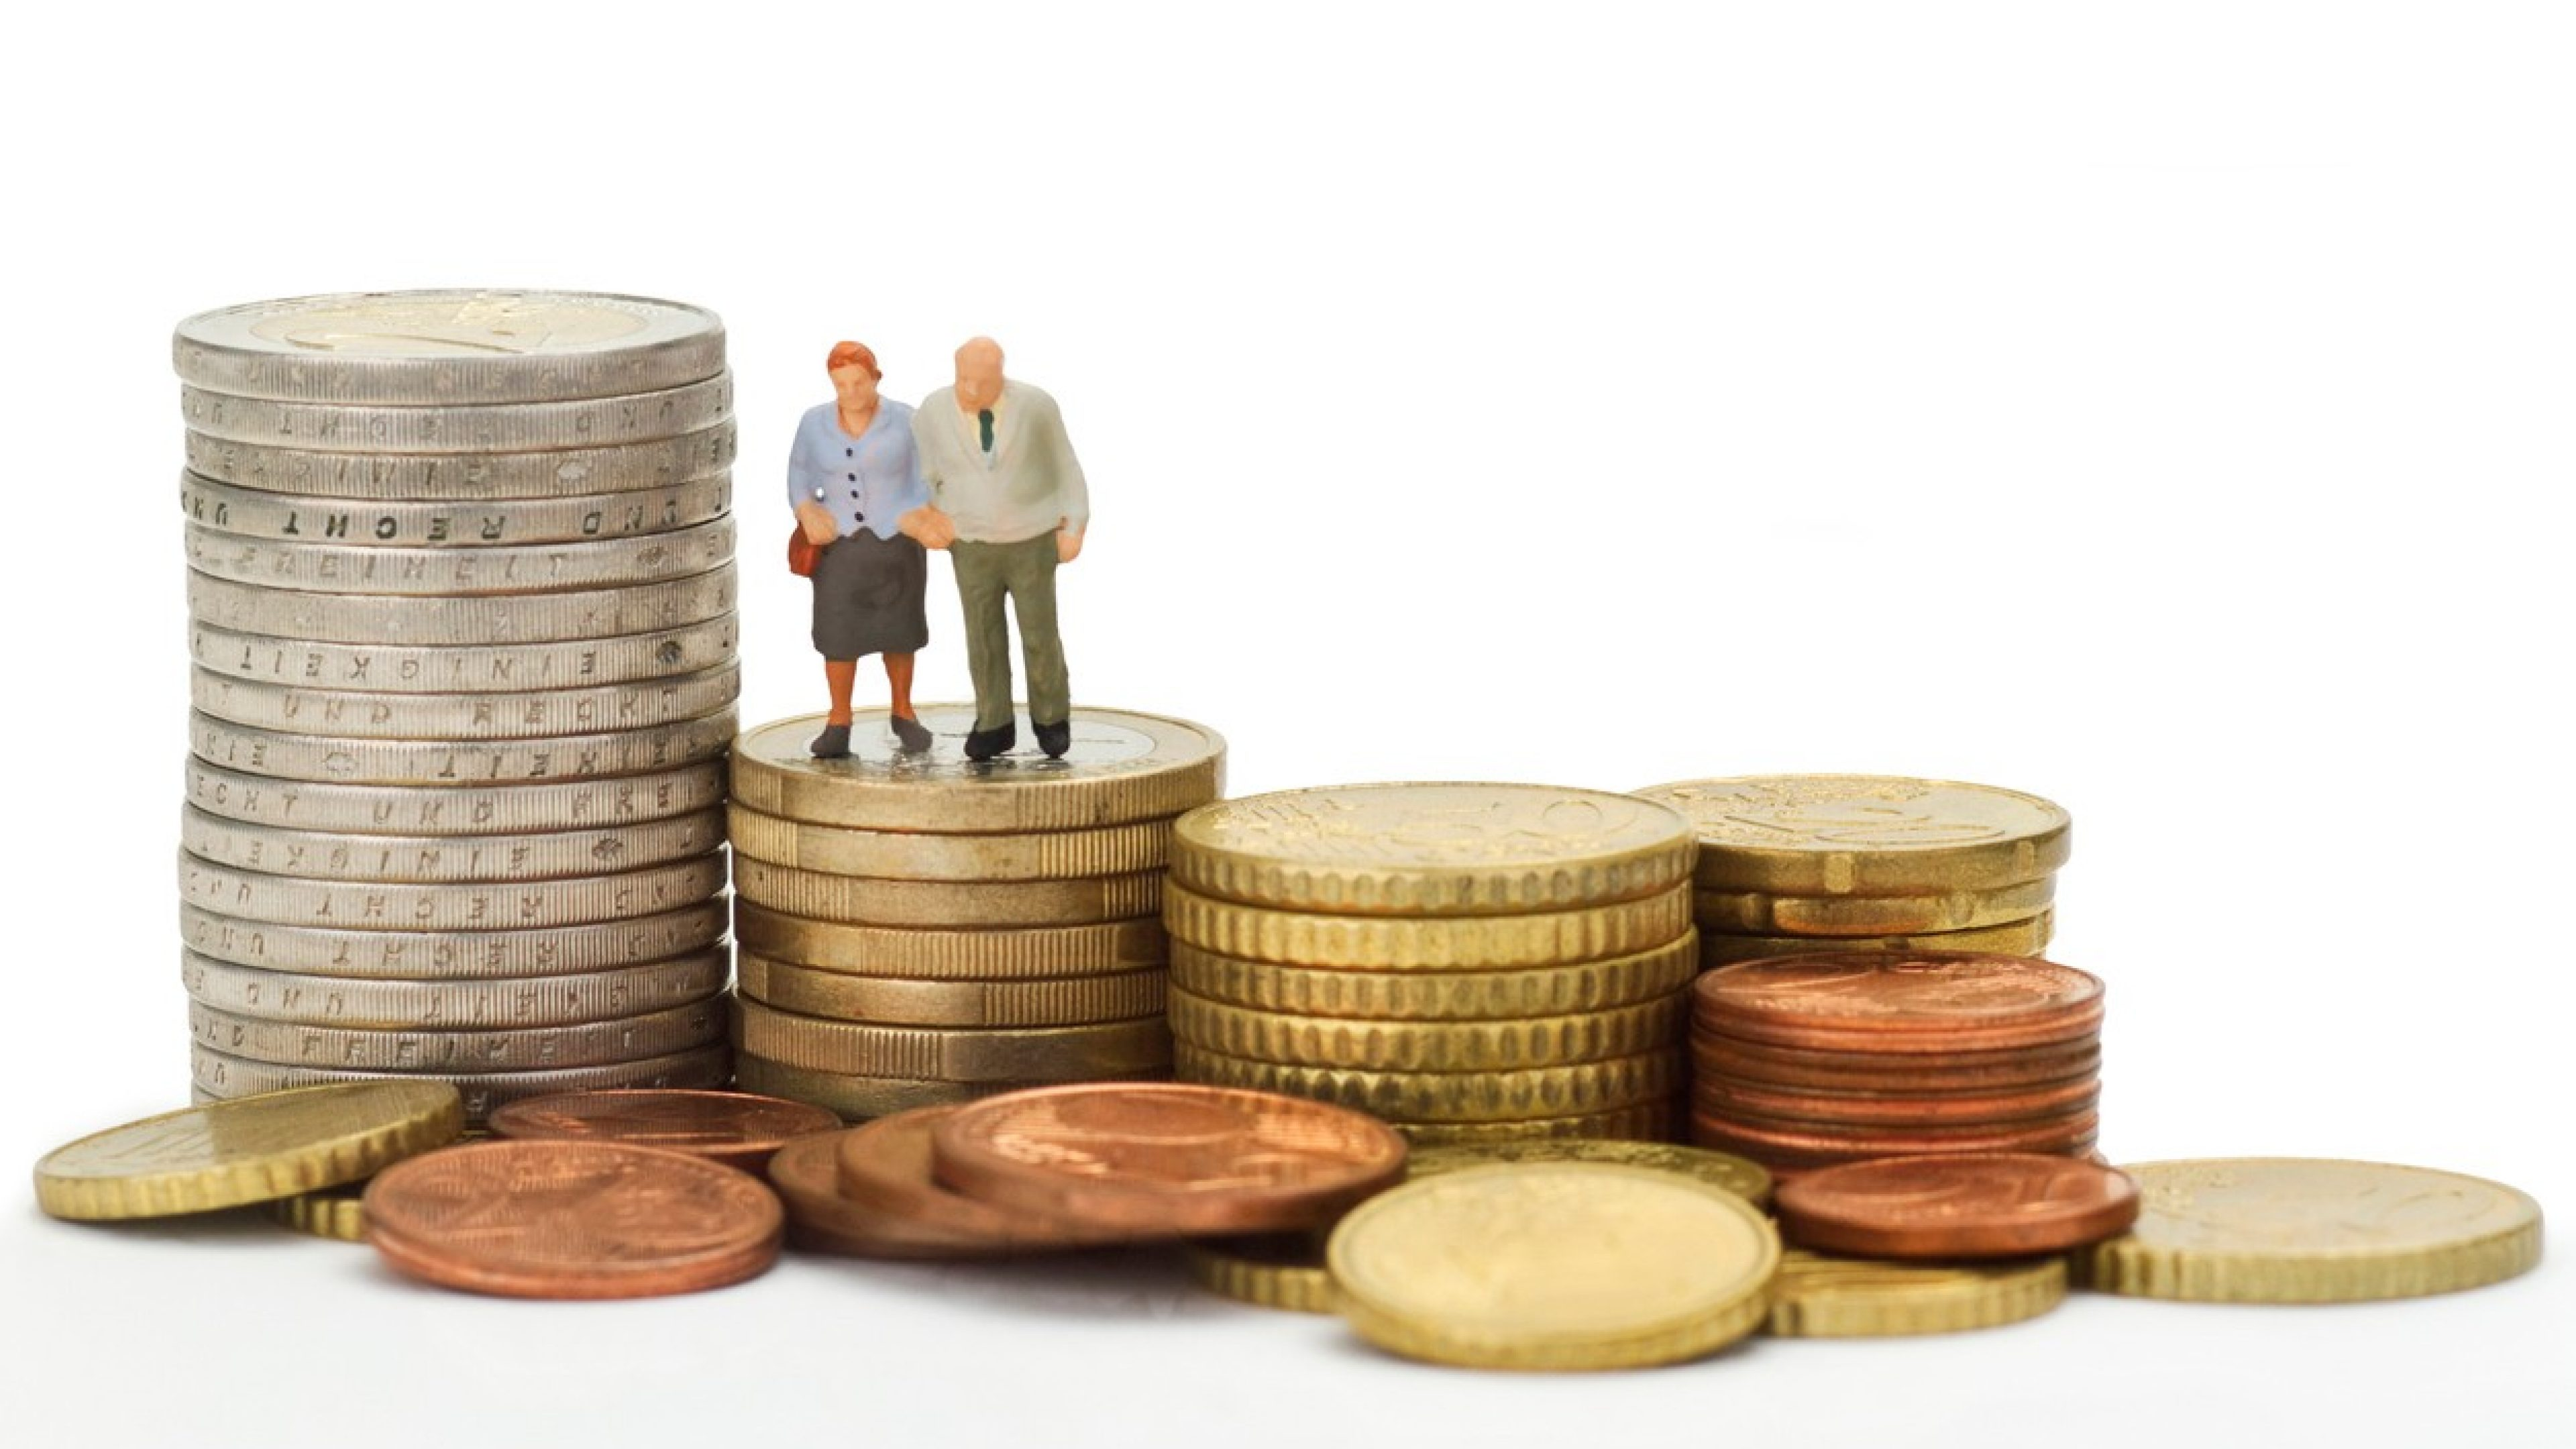 Seniors figurines with euro coins isolated on white background